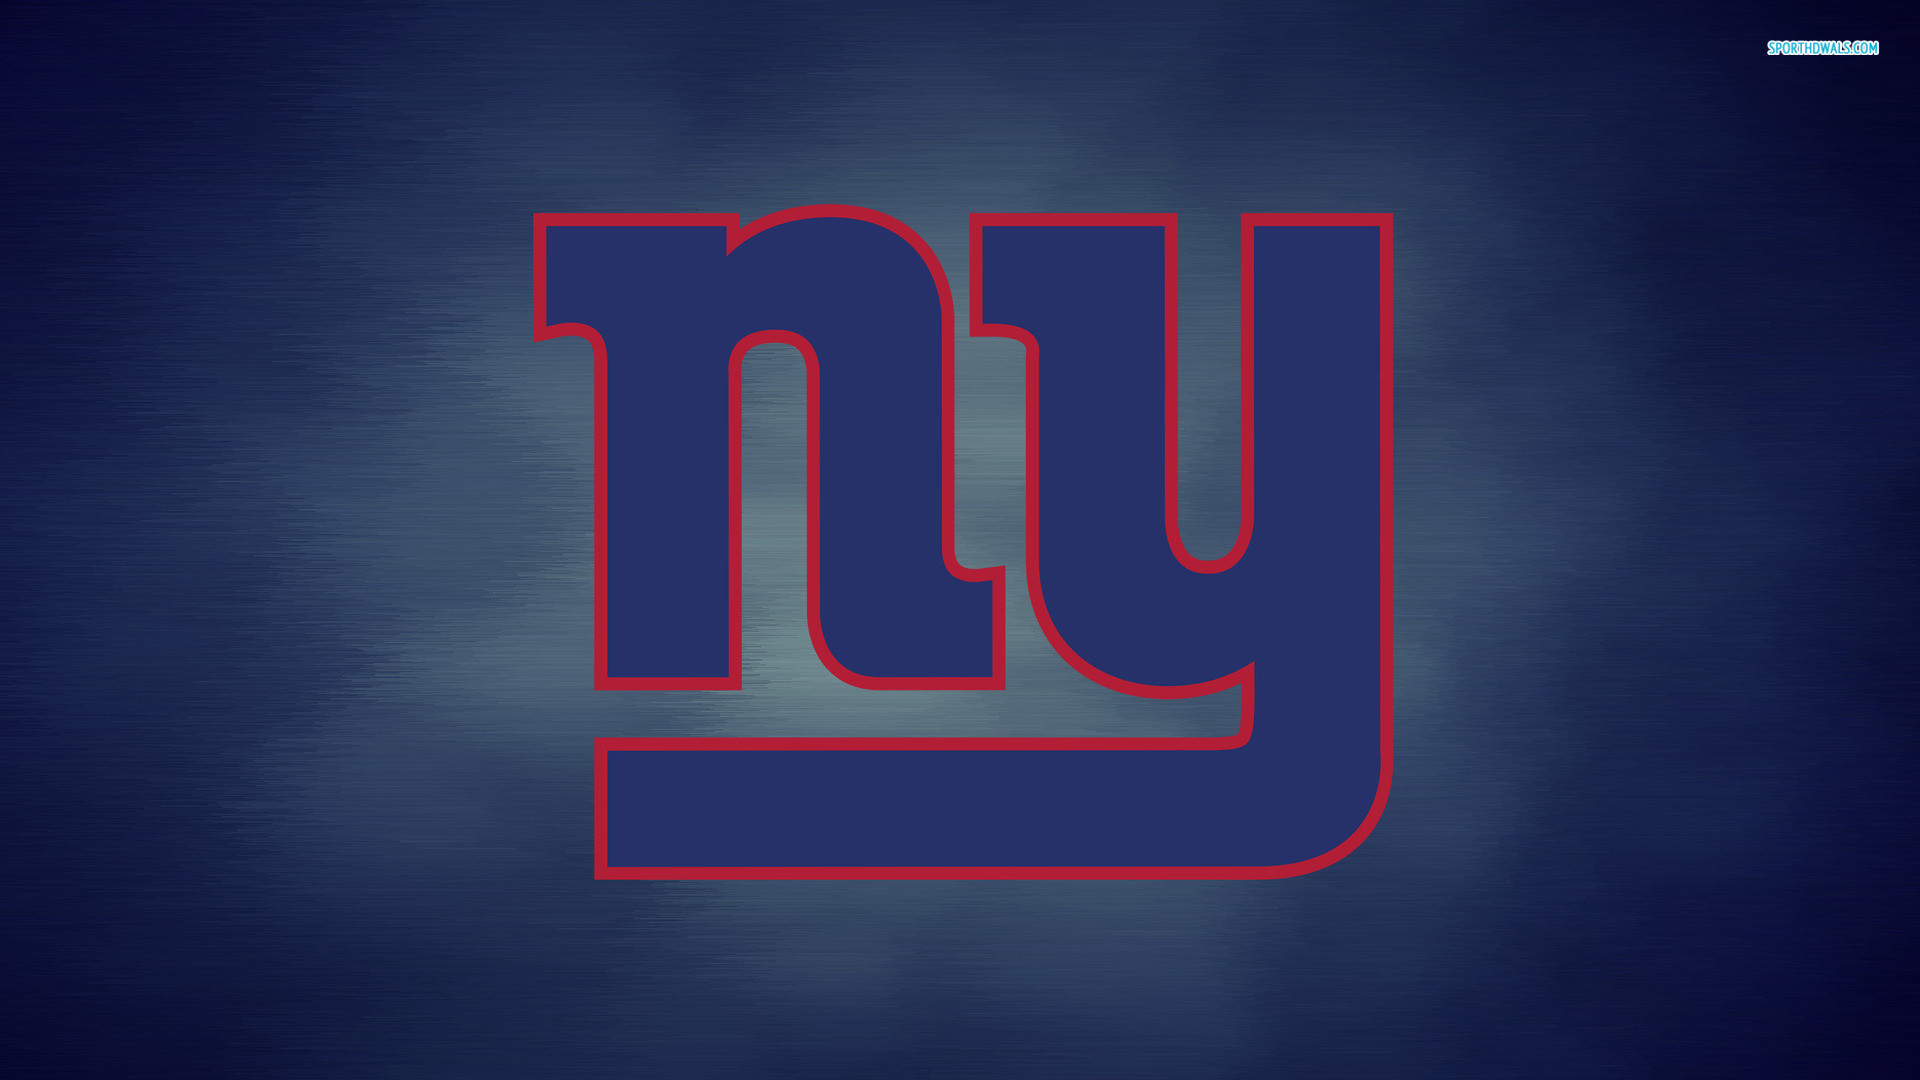 Enjoy this New York Giants background | New York Giants wallpapers